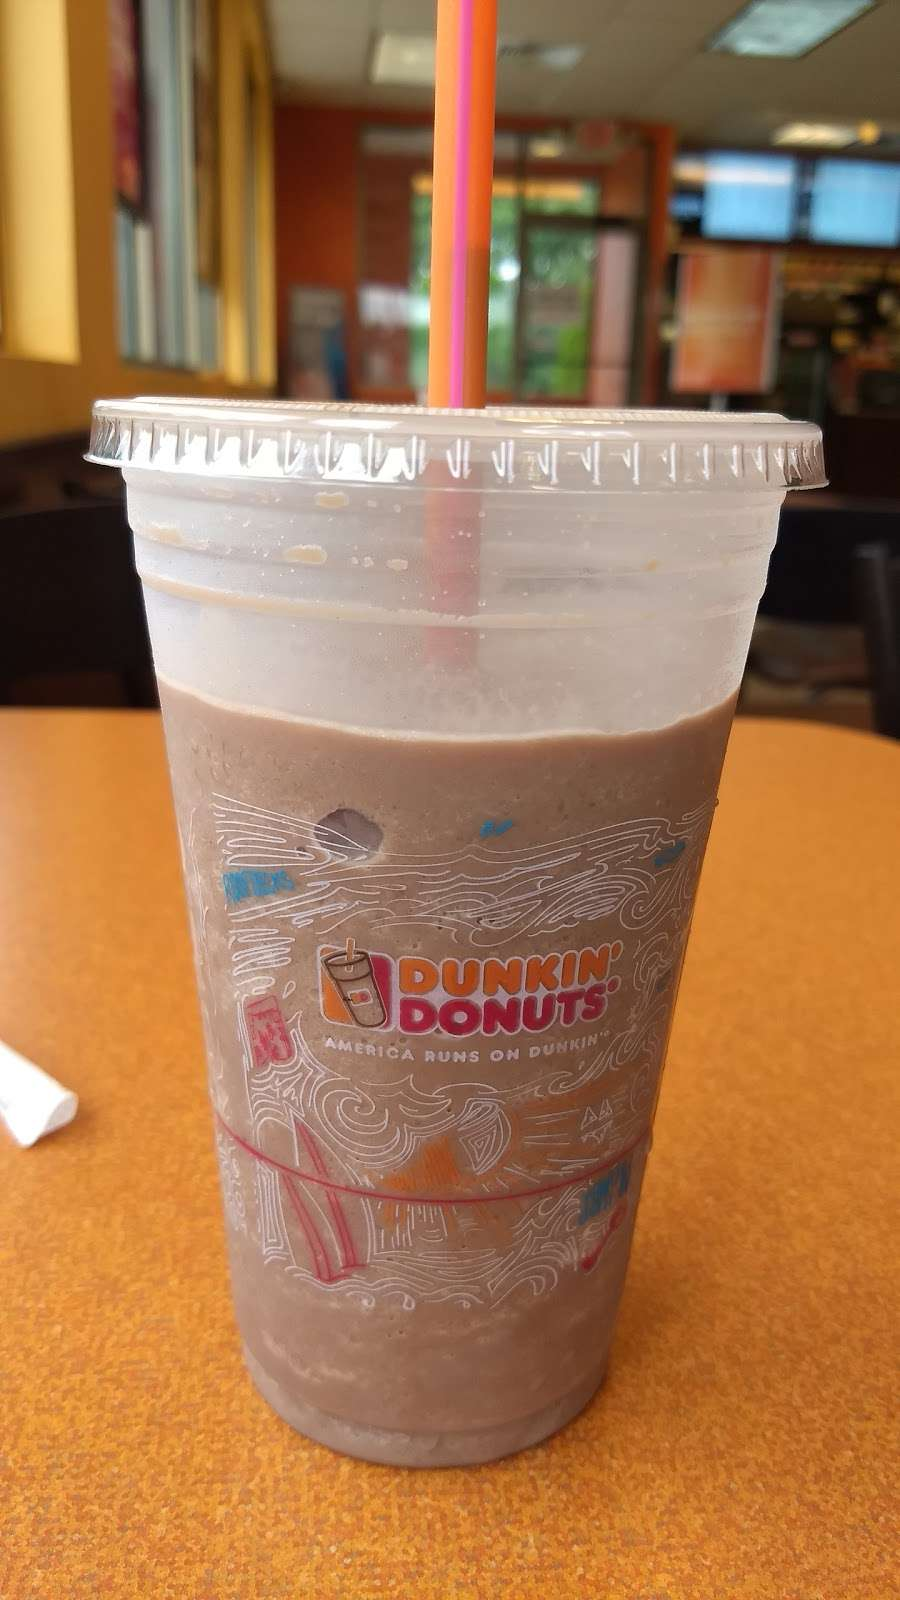 Dunkin Donuts - cafe    Photo 7 of 10   Address: 421 N Broadway, Pennsville, NJ 08070, USA   Phone: (856) 299-2035